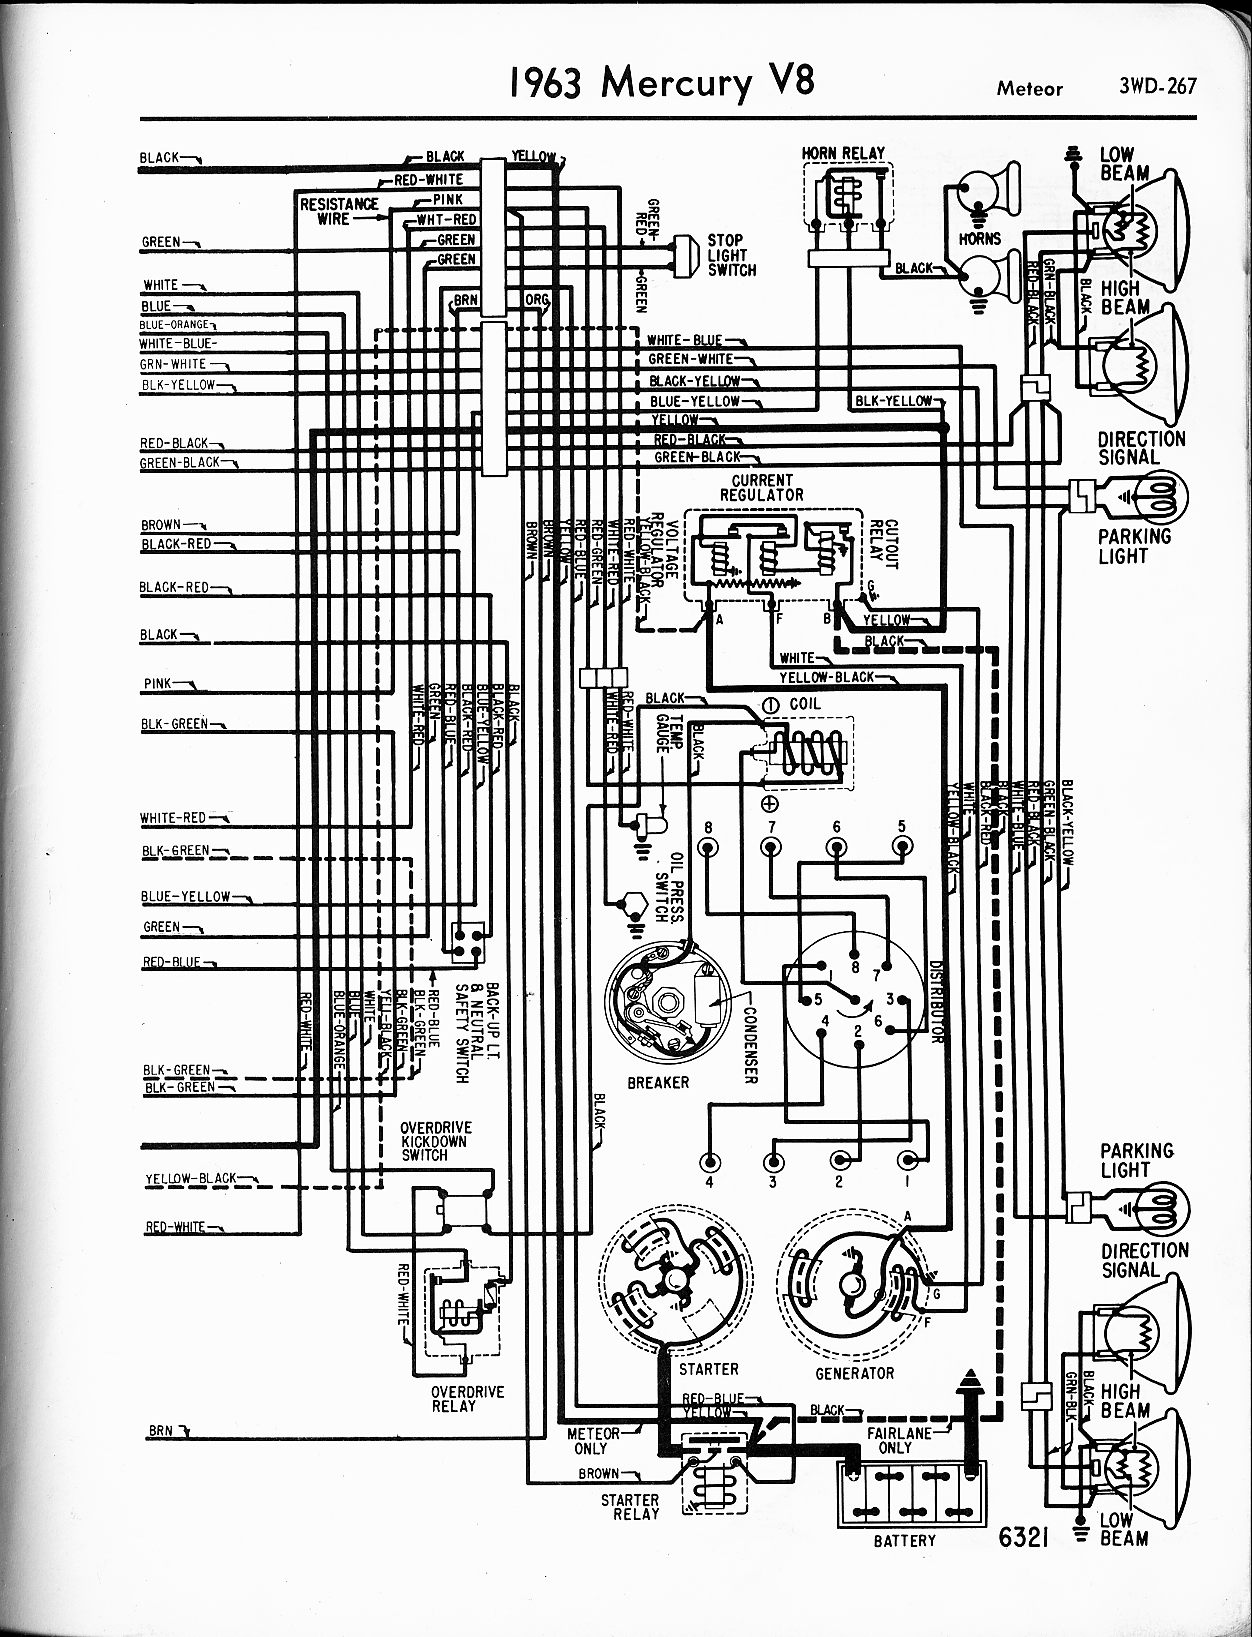 1963 mercury comet wiring diagram basic guide wiring diagram u2022 rh needpixies com  1965 mercury comet wiring diagram